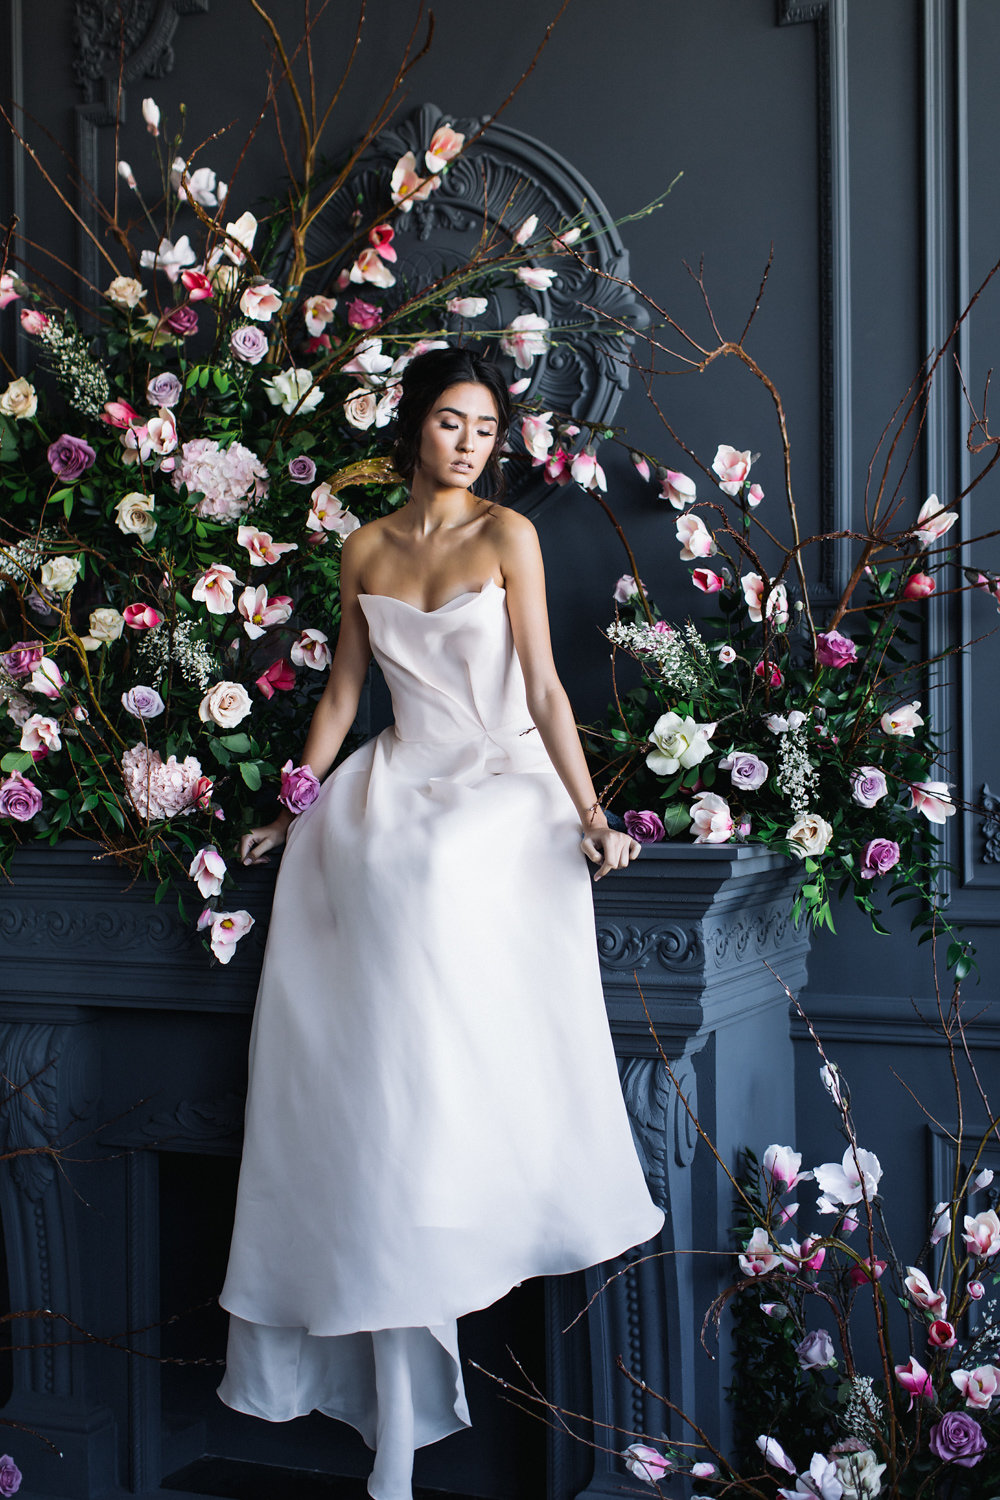 August In Bloom - Bride and lush floral garland - Magnolia Dreams (The Bridal Affair)